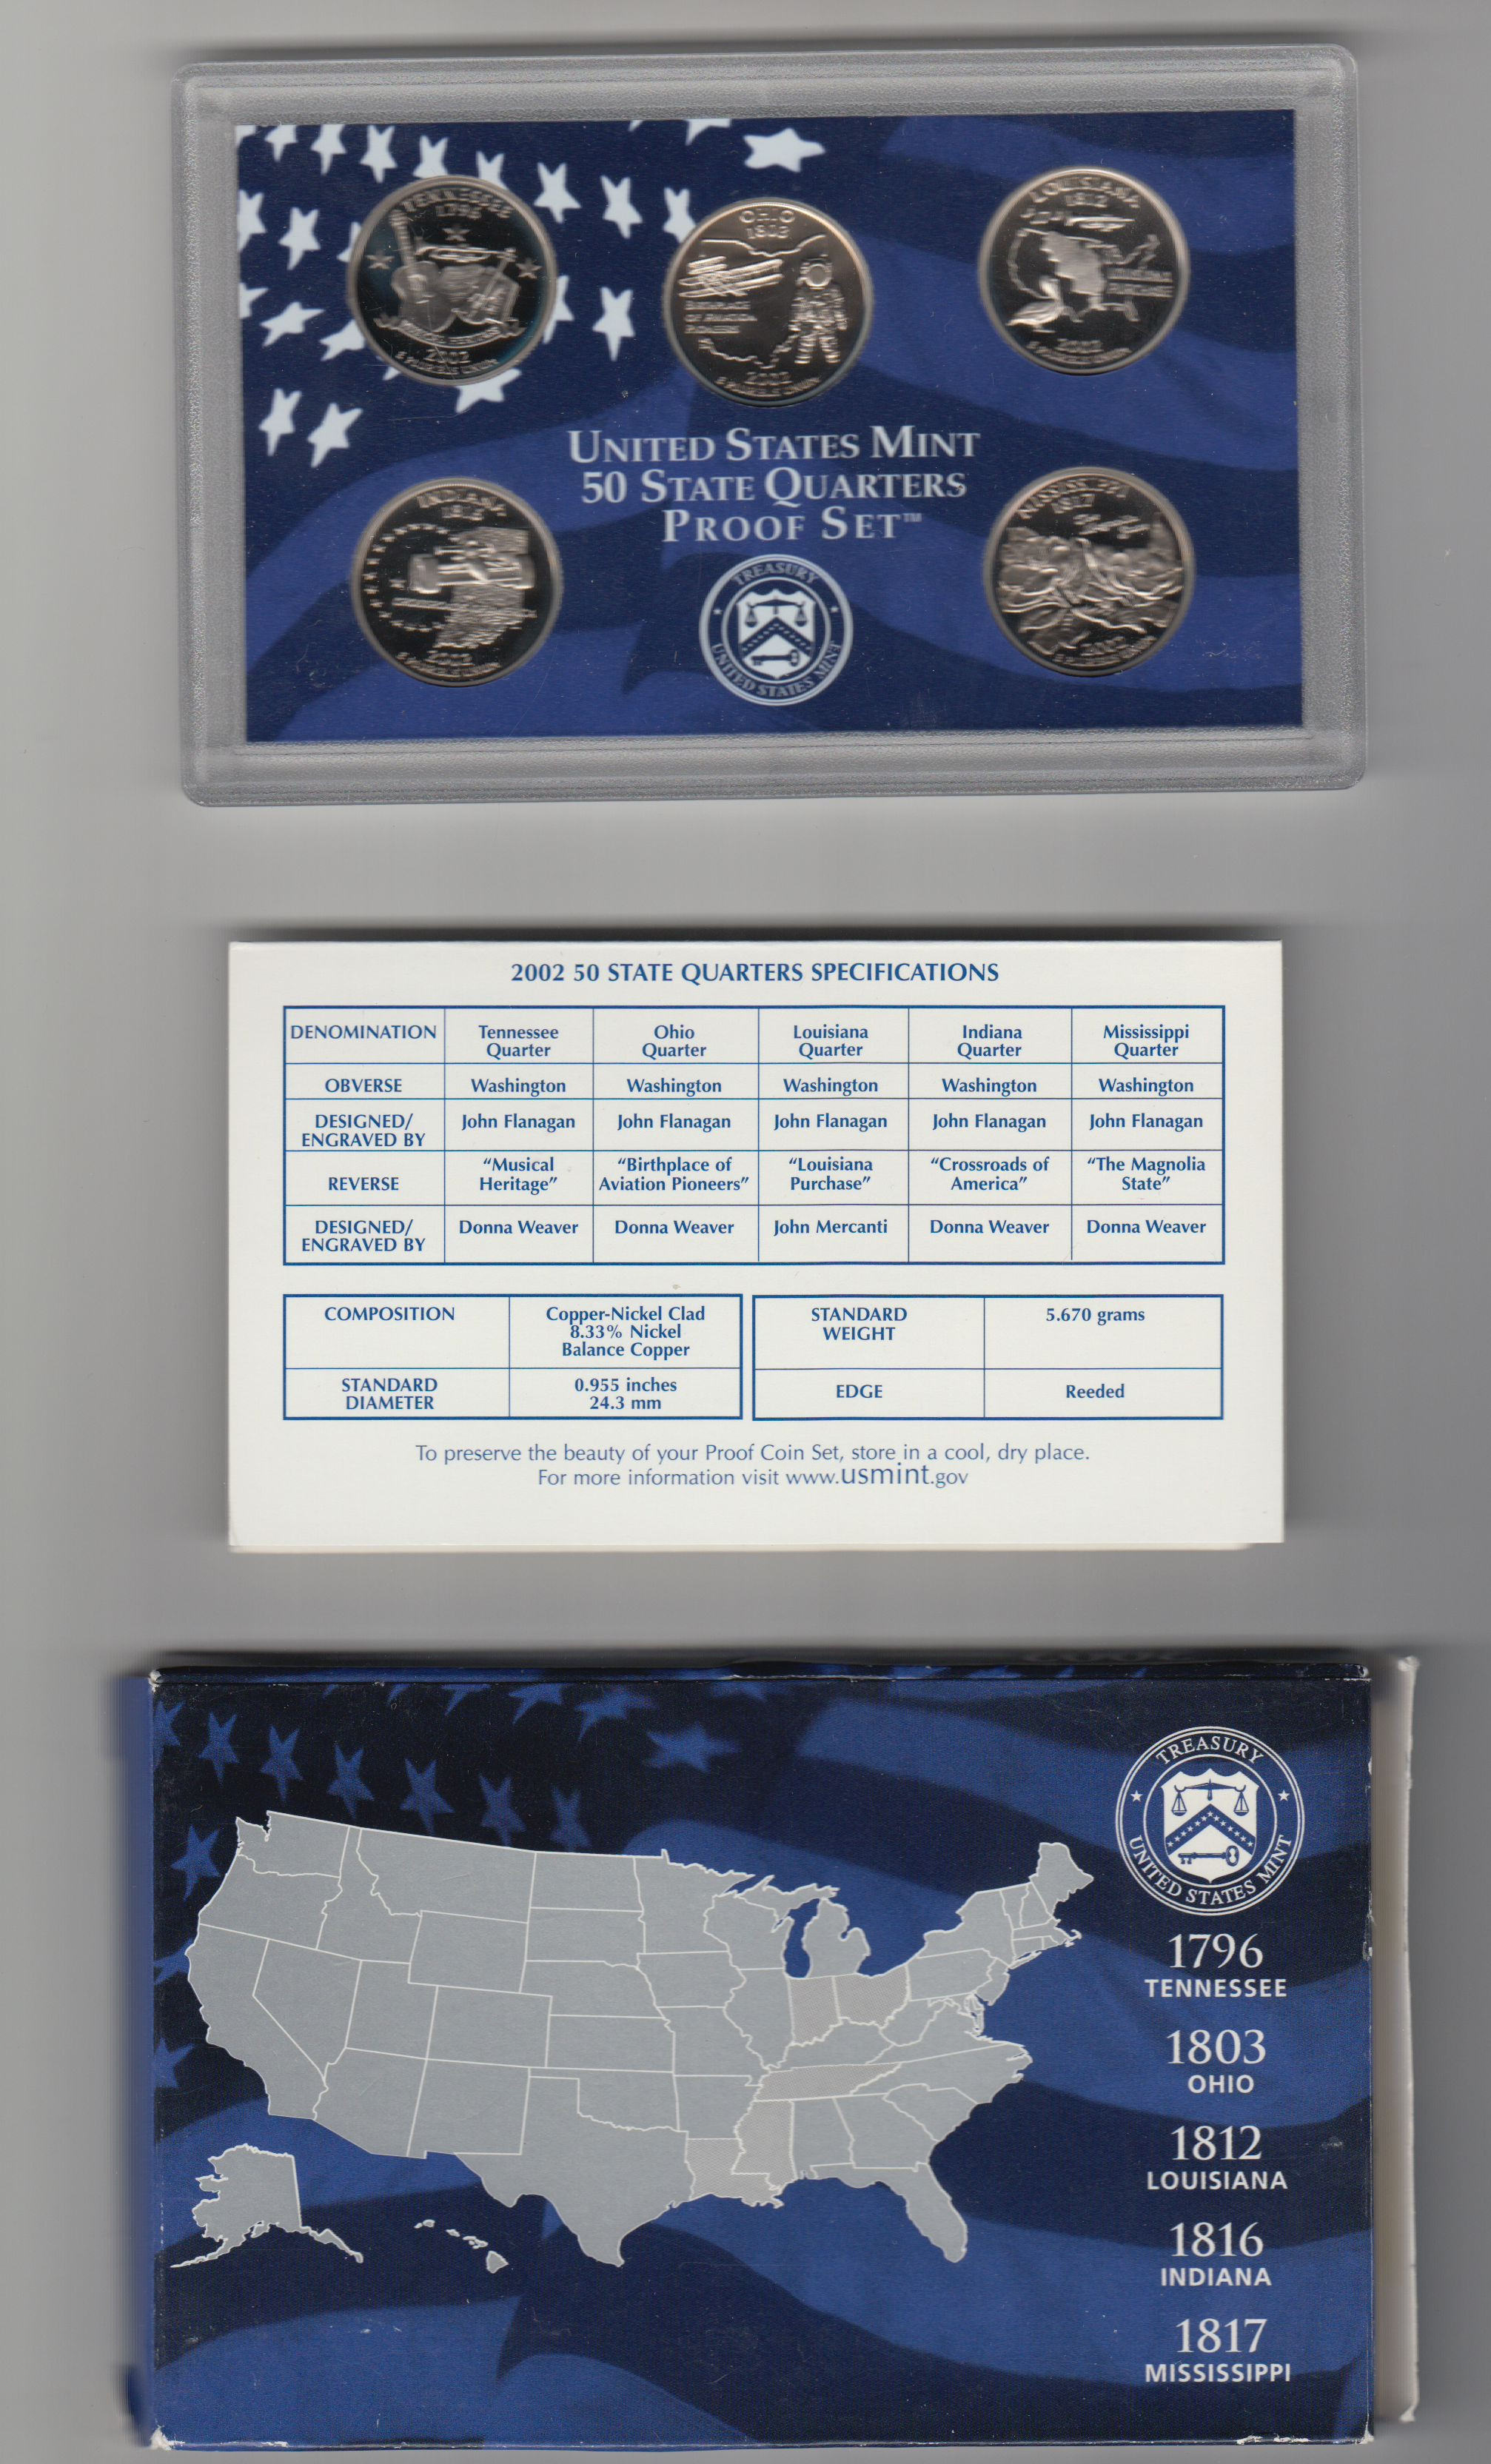 Best Of Value Of Usa 5 Coins 50 State Quarters Proof Set U S State Quarter Set Value Of New Washington 50 State Quarters Program 1999 2008 State Quarter Set Value